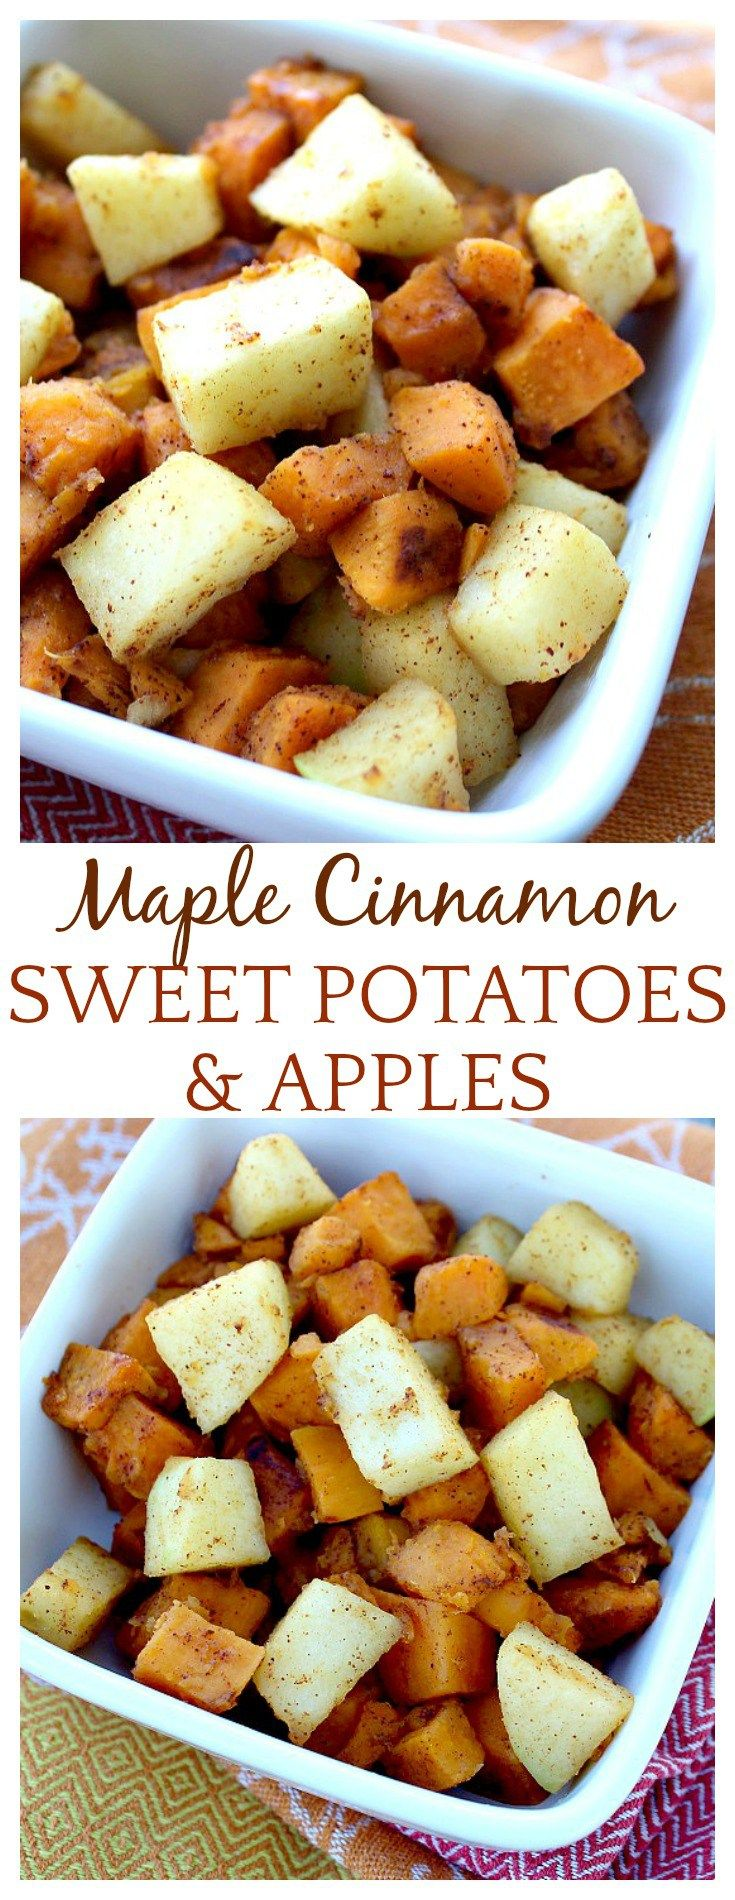 This apple and sweet potato recipe reminded me of apple pie, but with sweet potatoes in the mix! The tart apples offset the sweet to make this dish absolutely delish! A great fall side dish recipe!